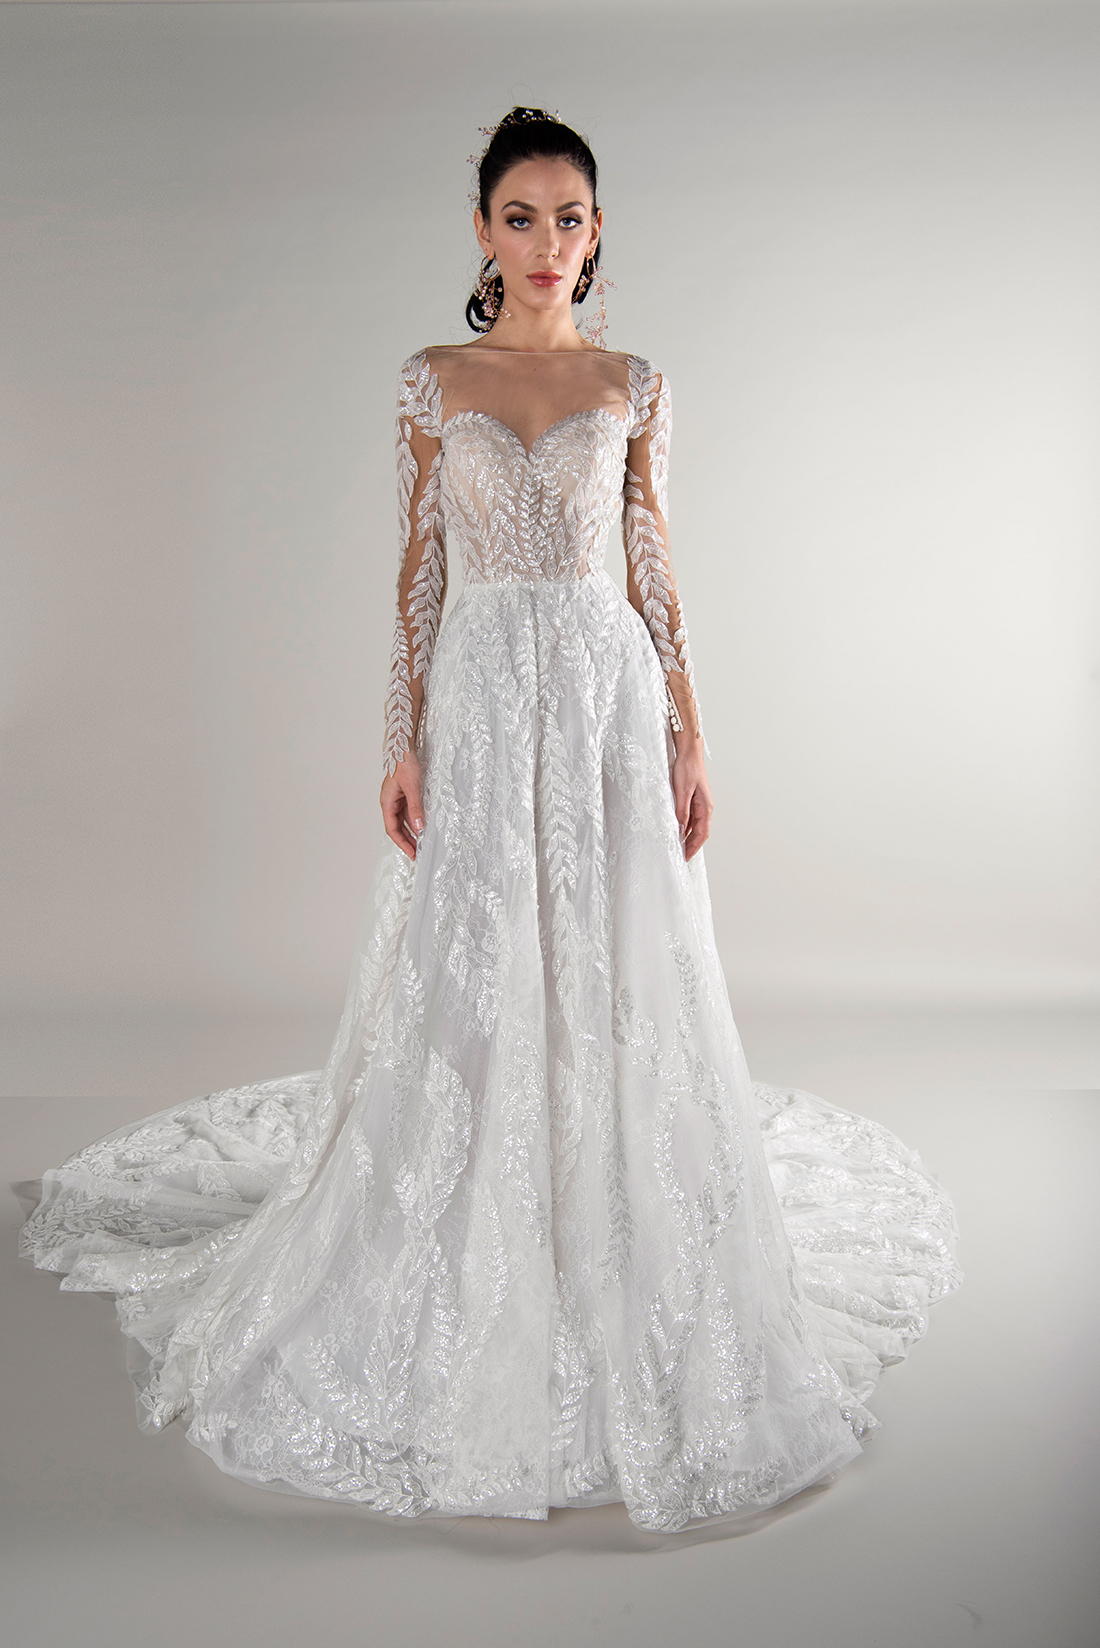 Yumi Katsura Fall 2019 Wedding Dress Collection